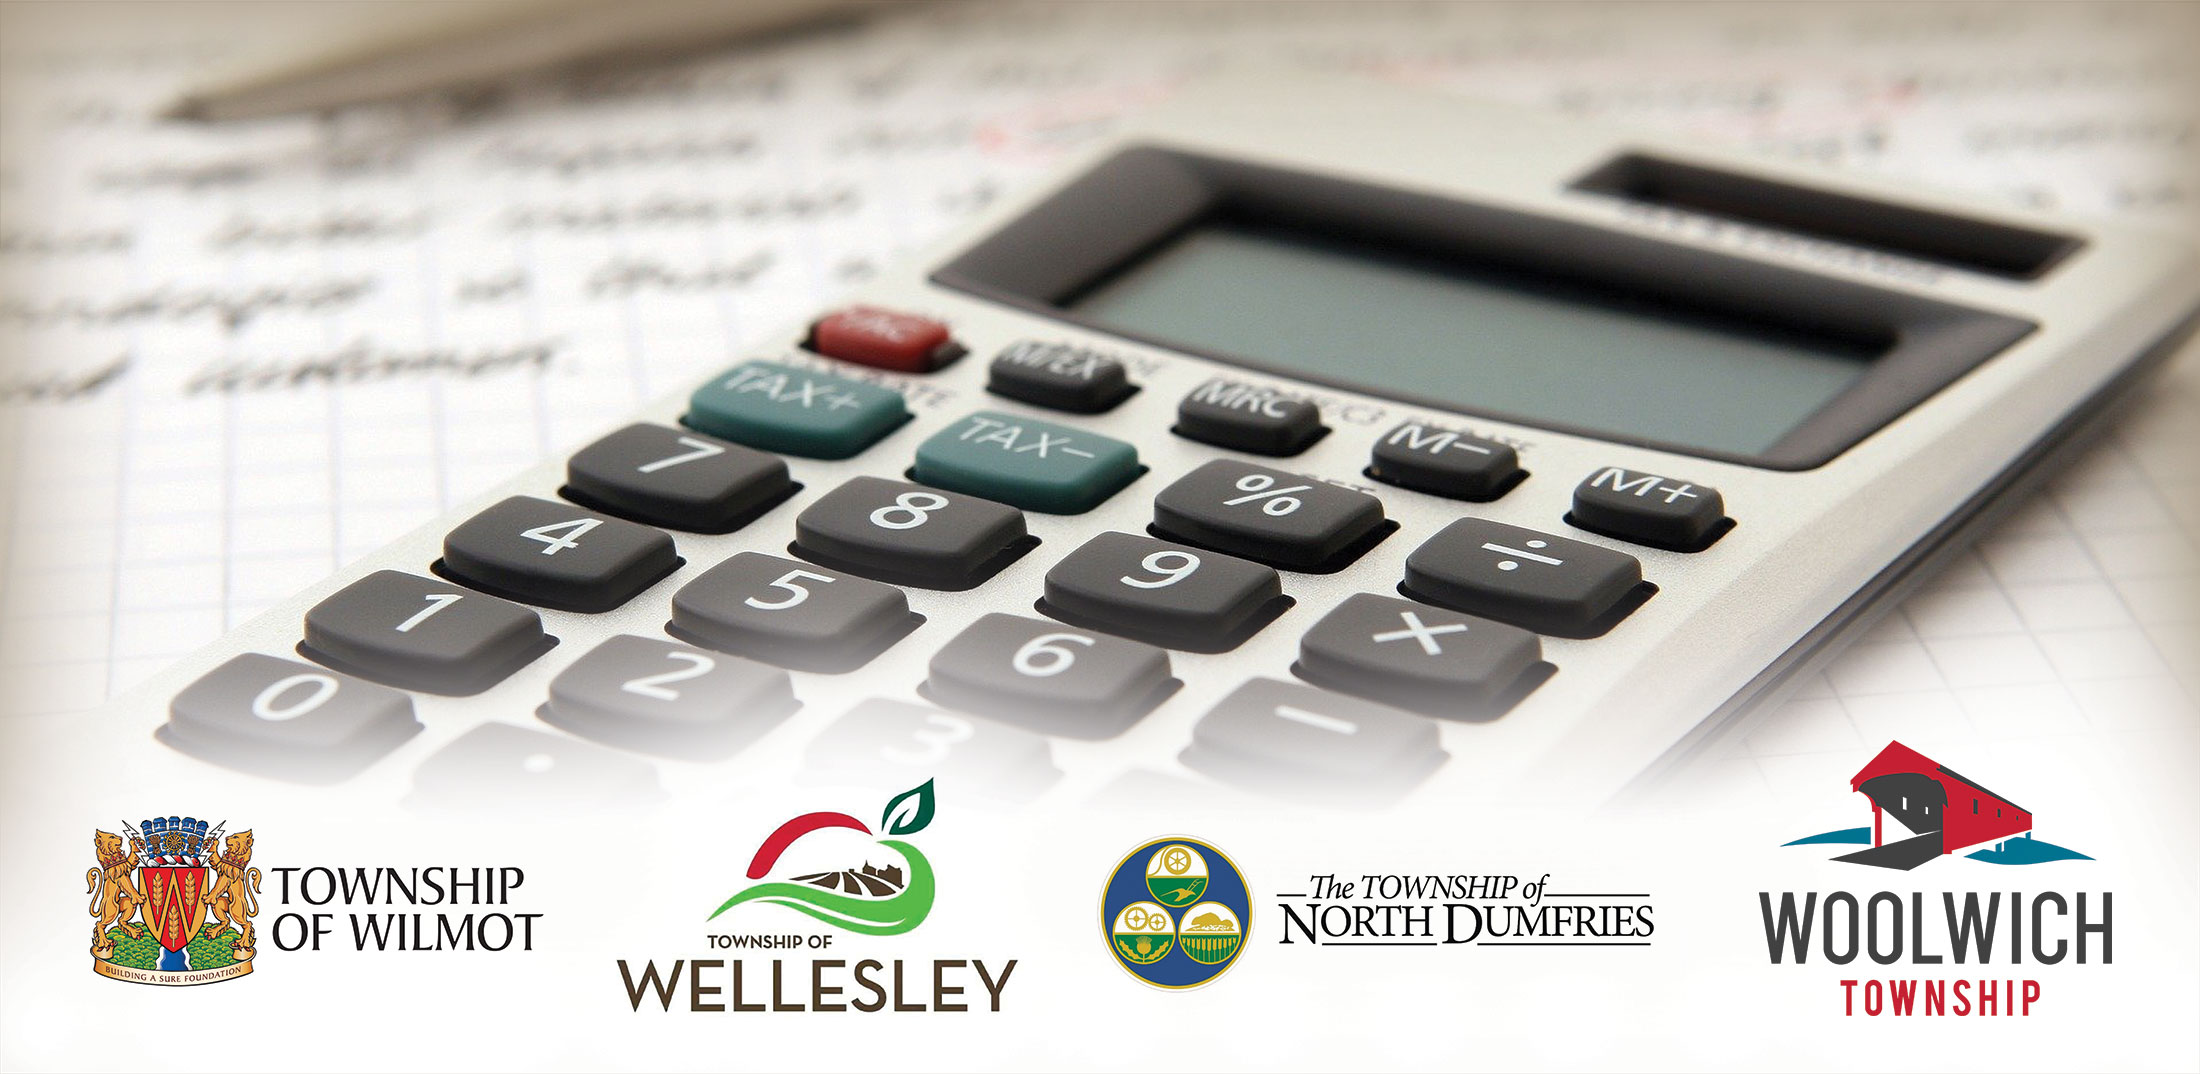 bottom line taxes townships rural woolwich north dumfries wellesley wilmot